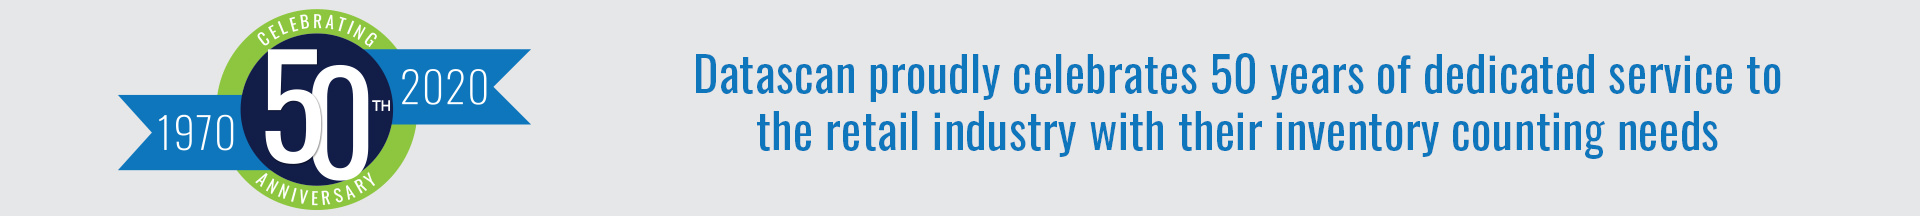 Datascan proudly celebrates 50 years of dedicated service to the retail industry with their inventory counting needs